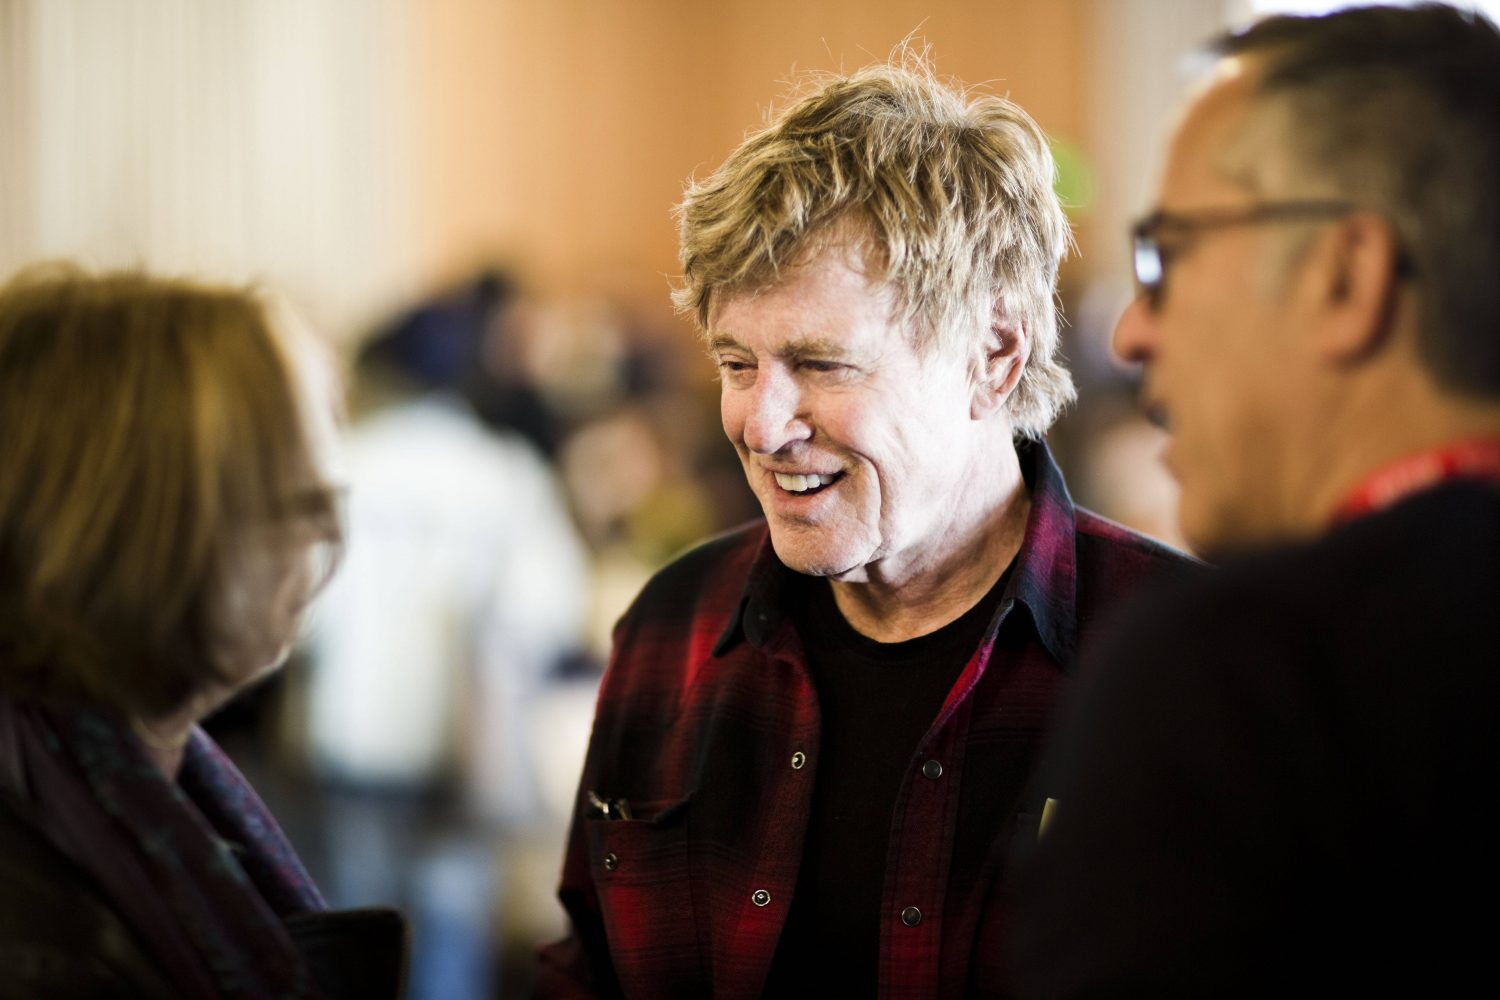 2015 Sundance Film Festival Day 3. Directors' Brunch at the Sundance Resort